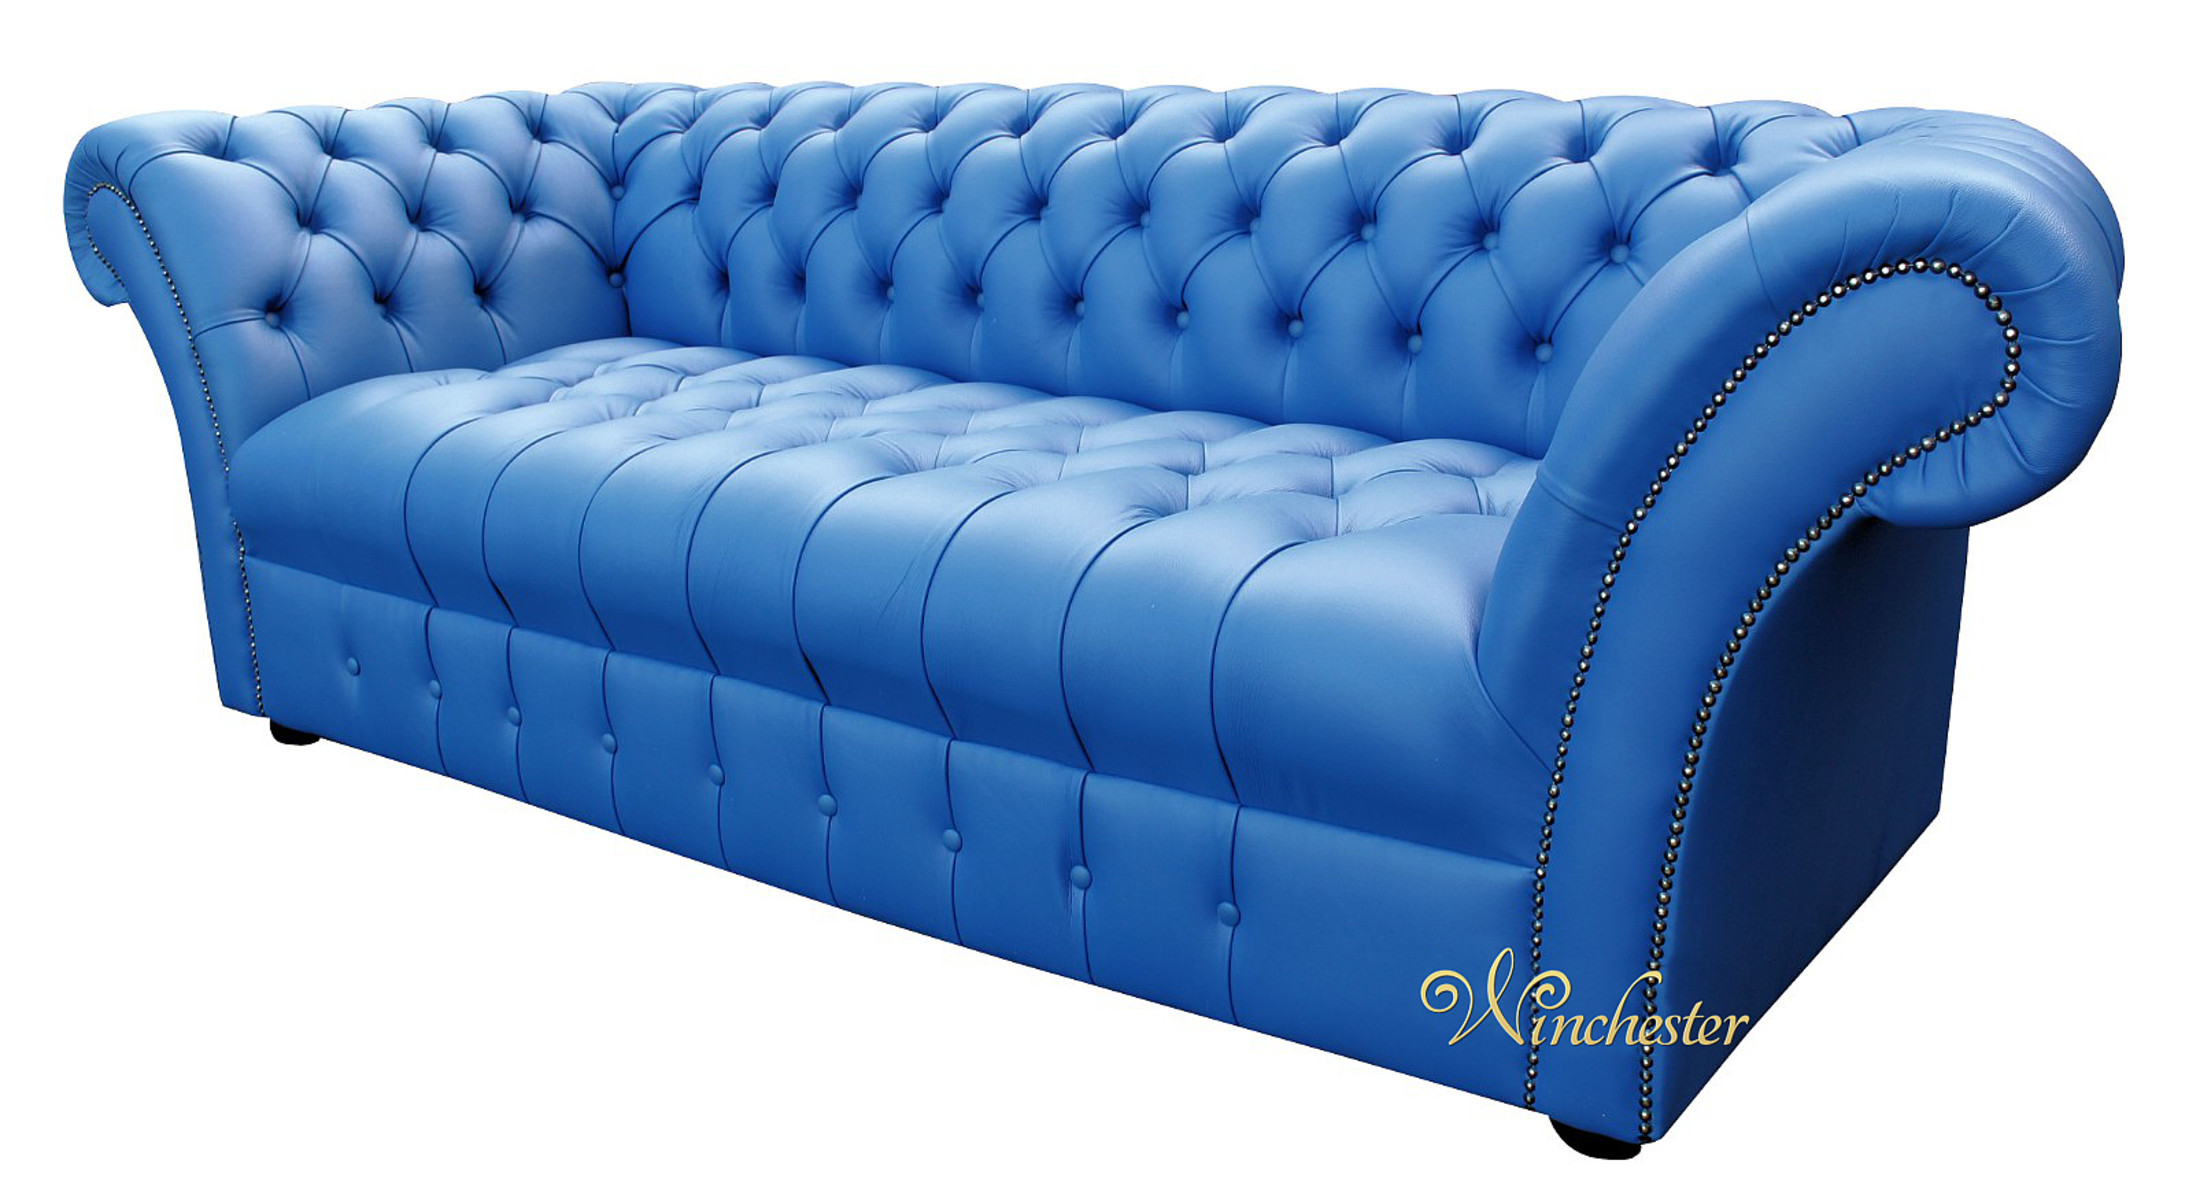 Chesterfield Balmoral 3 Seater Buttoned Seat Sofa  Ultramarine Blue Leather Wc